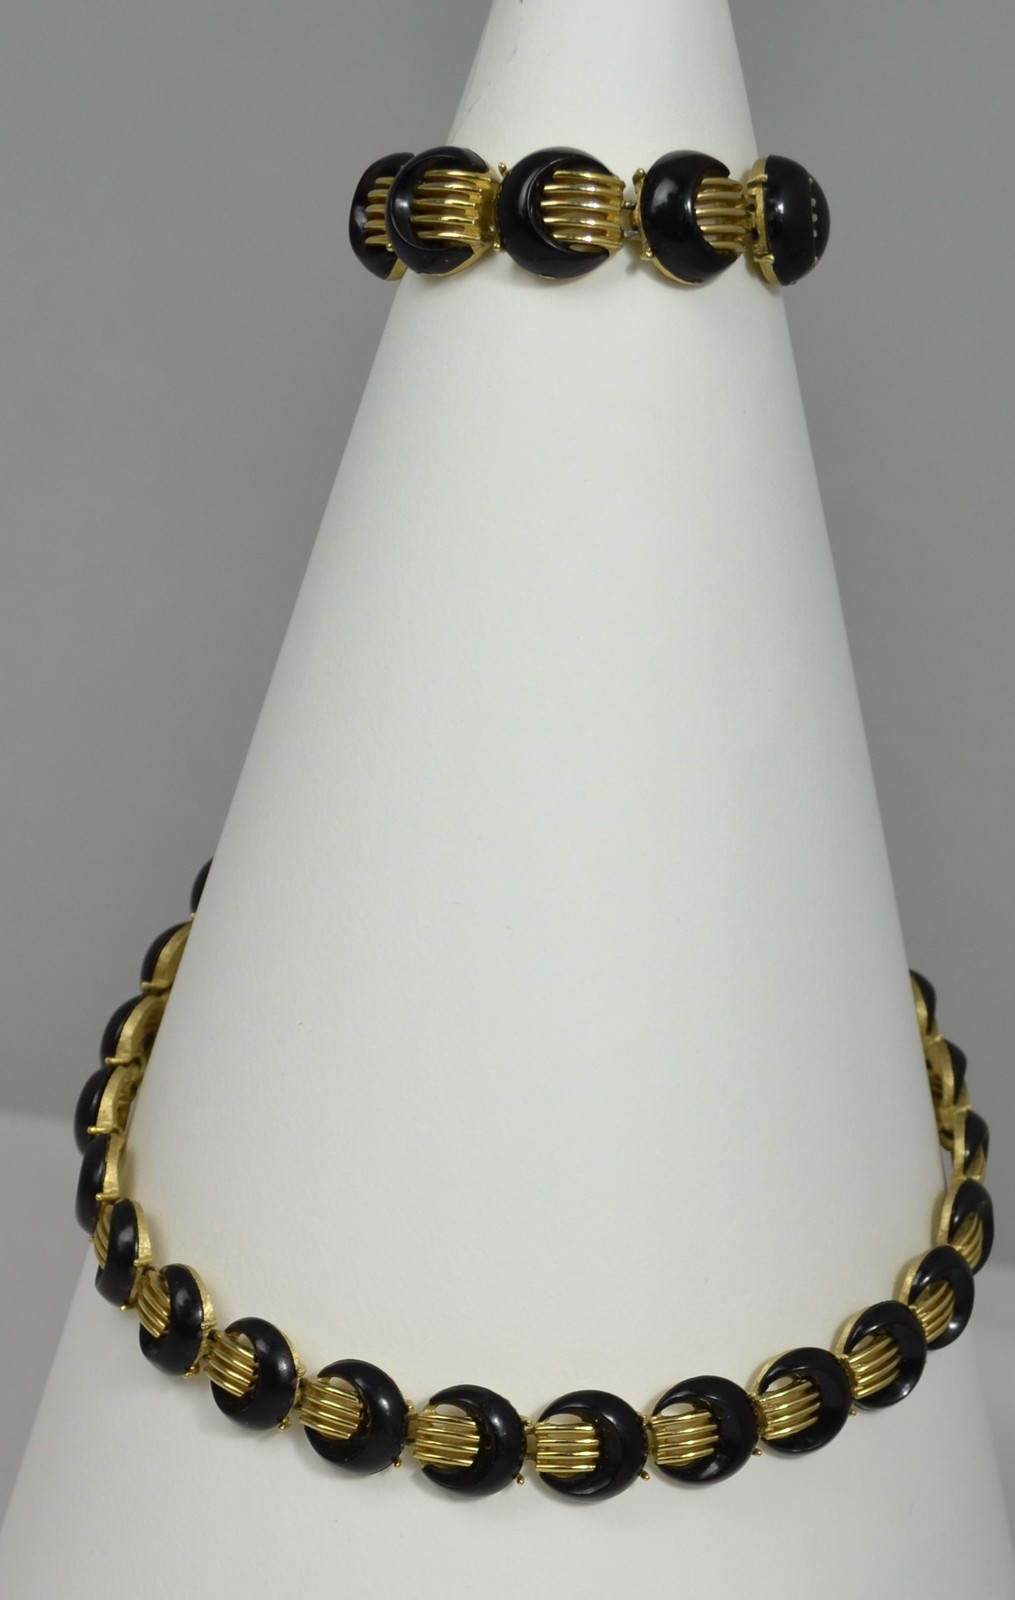 A set of curled bracelet and necklace with a black crescent